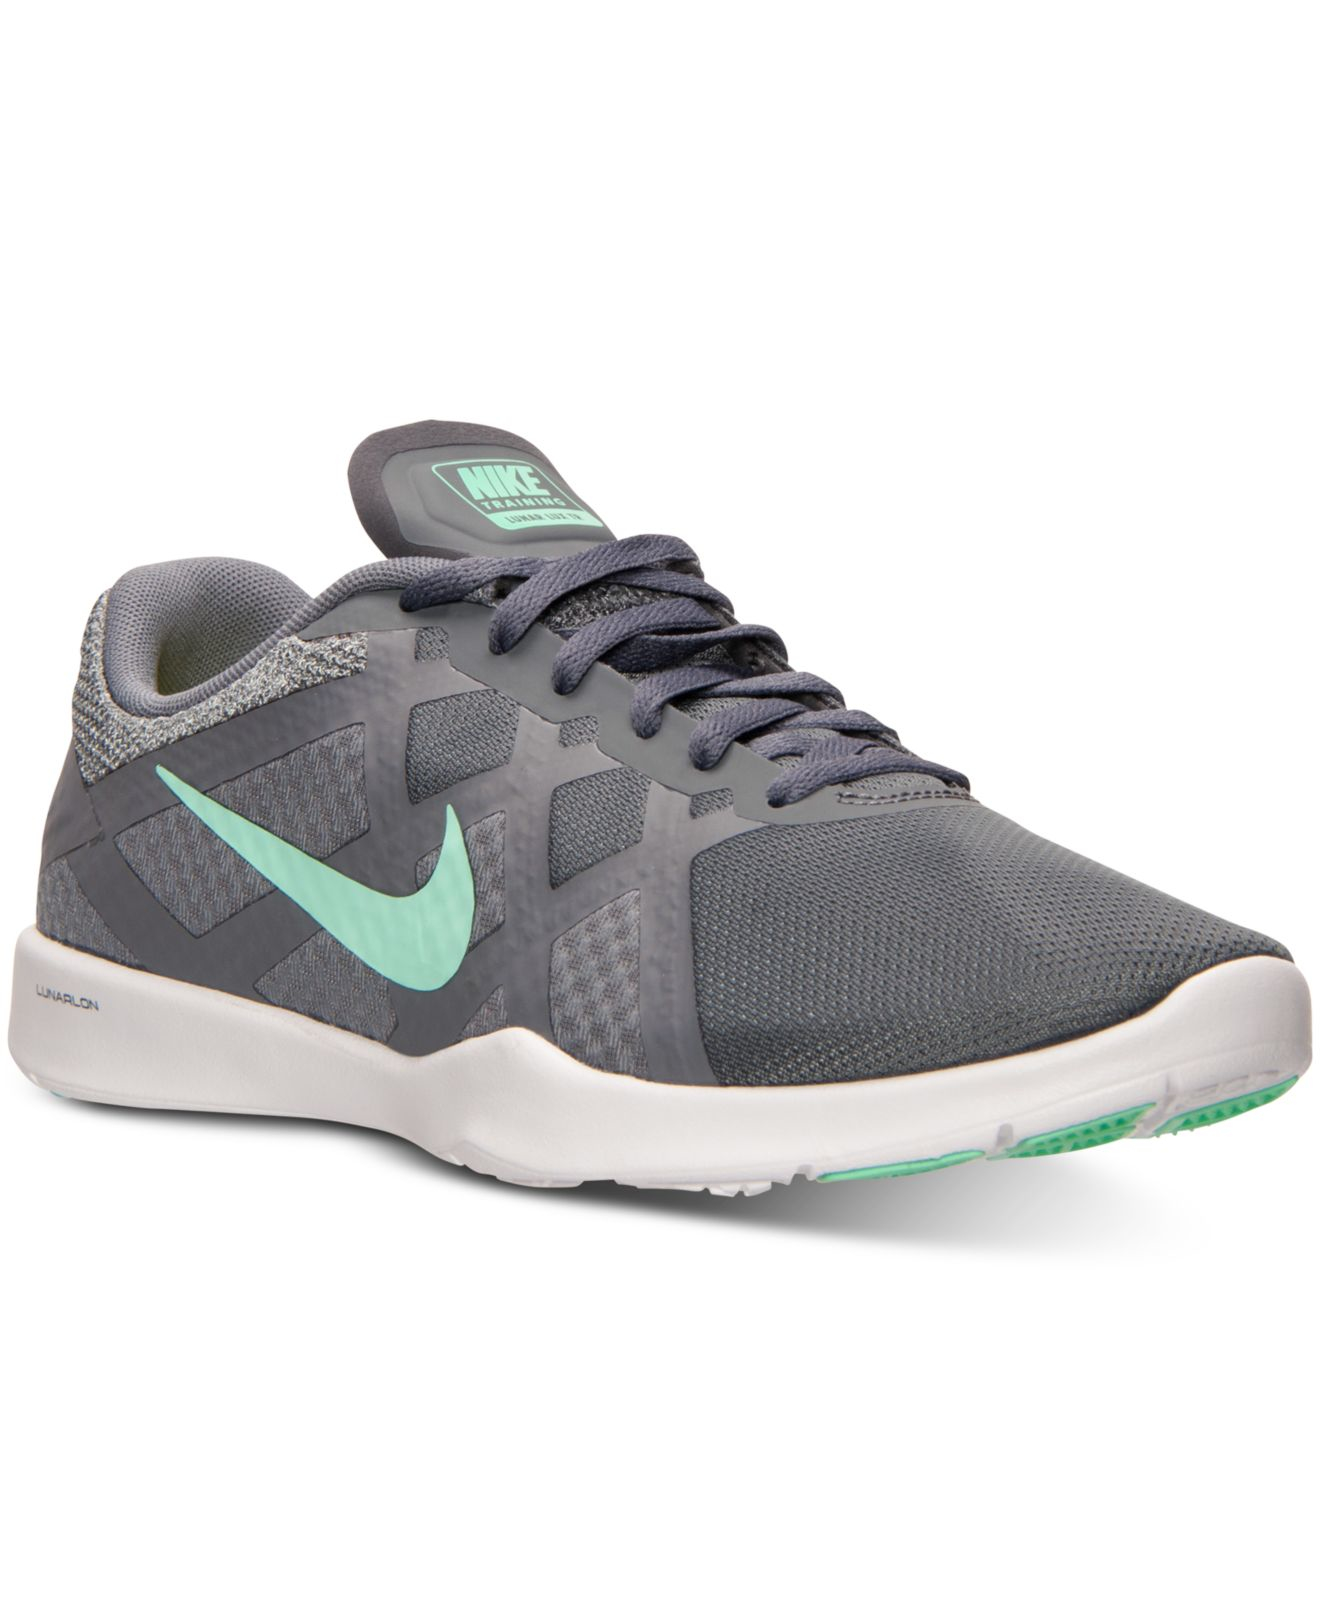 Tiffany Blue And Grey Nike Shoes